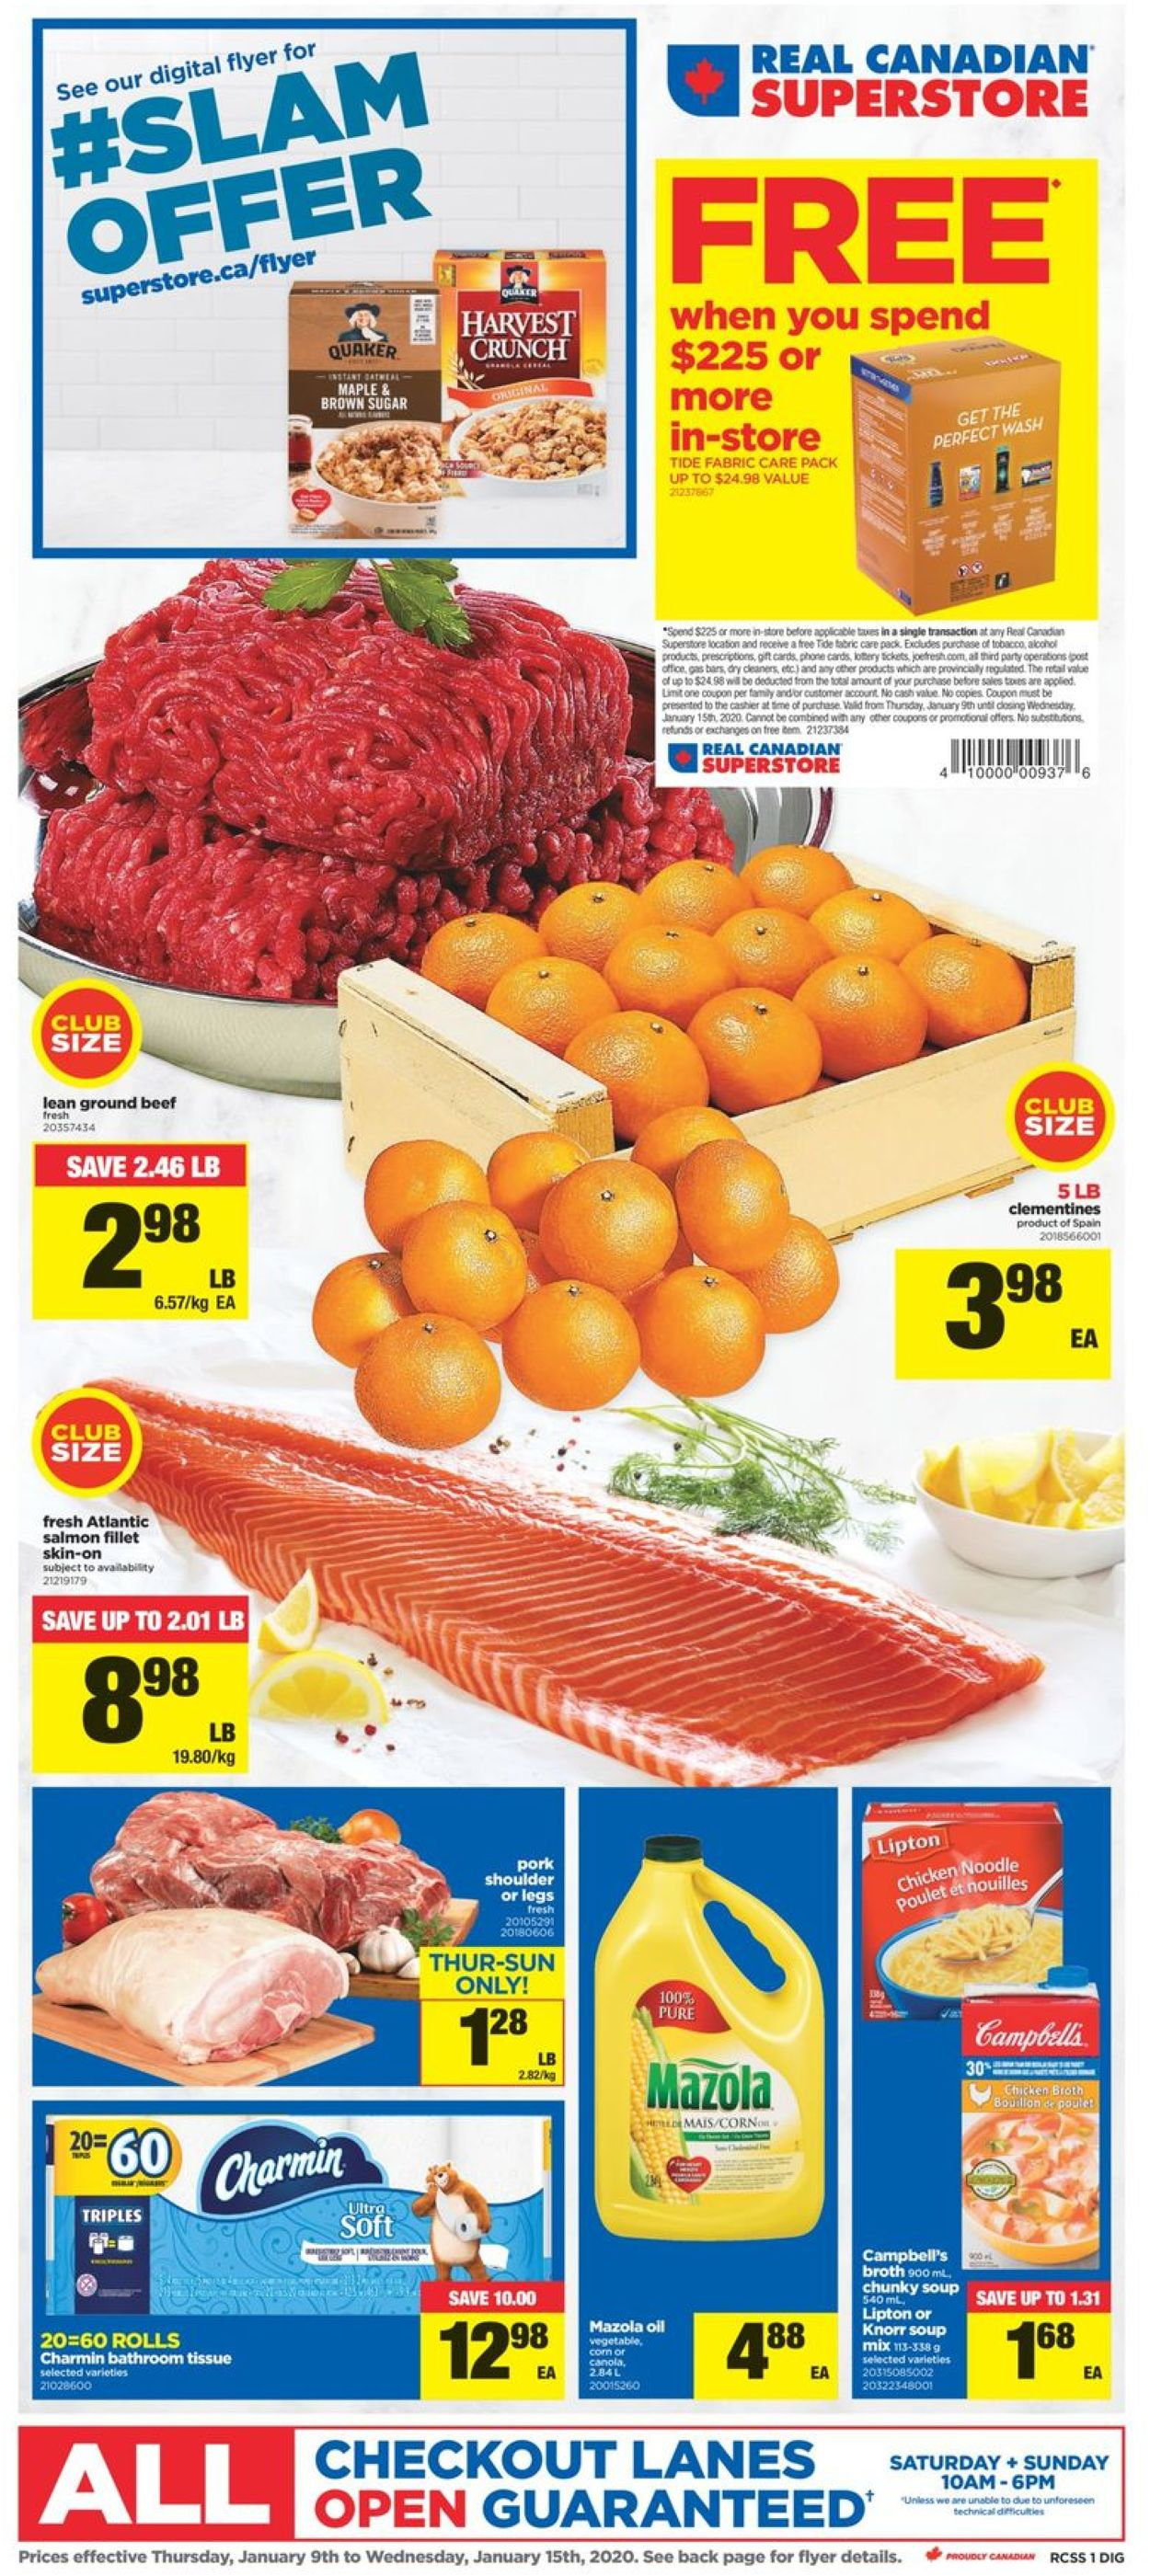 Real Canadian Superstore Flyer - 01/09-01/15/2020